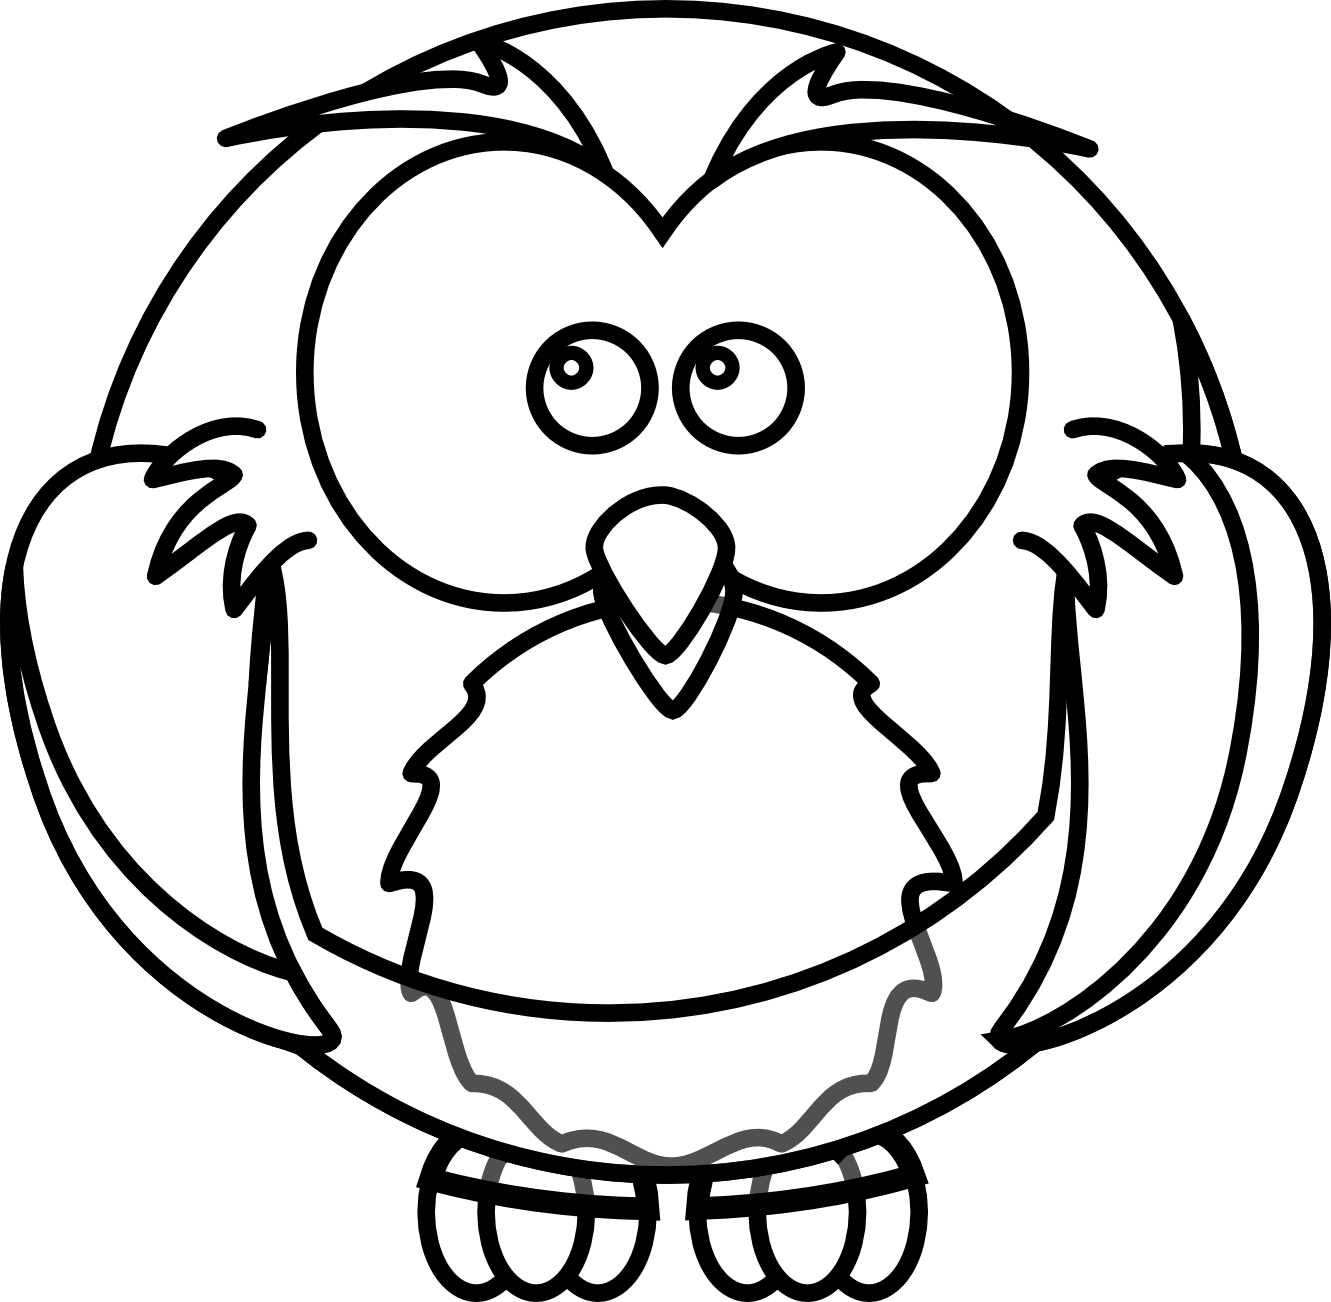 Black And White Owl Clip Art - ClipArt Best